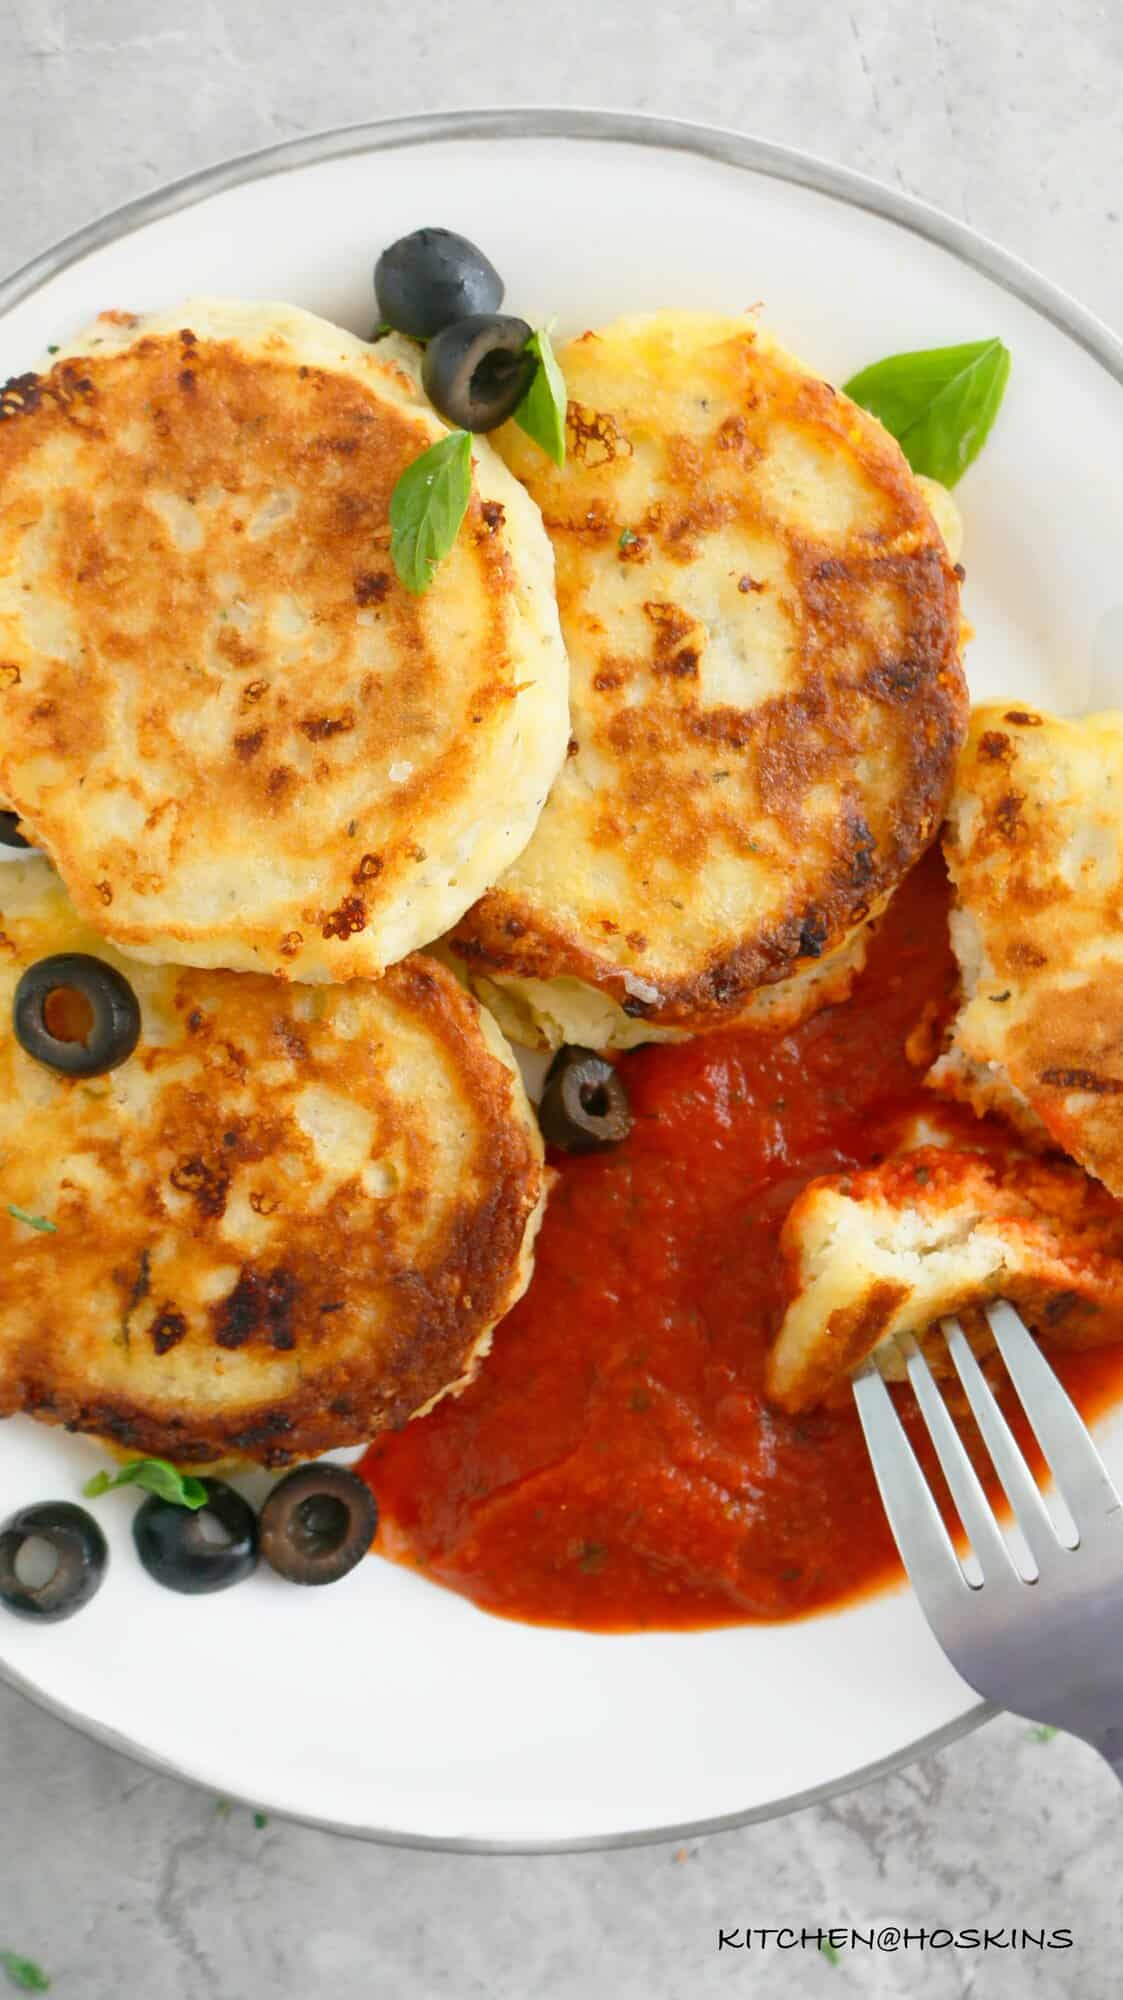 homemade savory pancakes with pizza toppings and served with marinara sauce